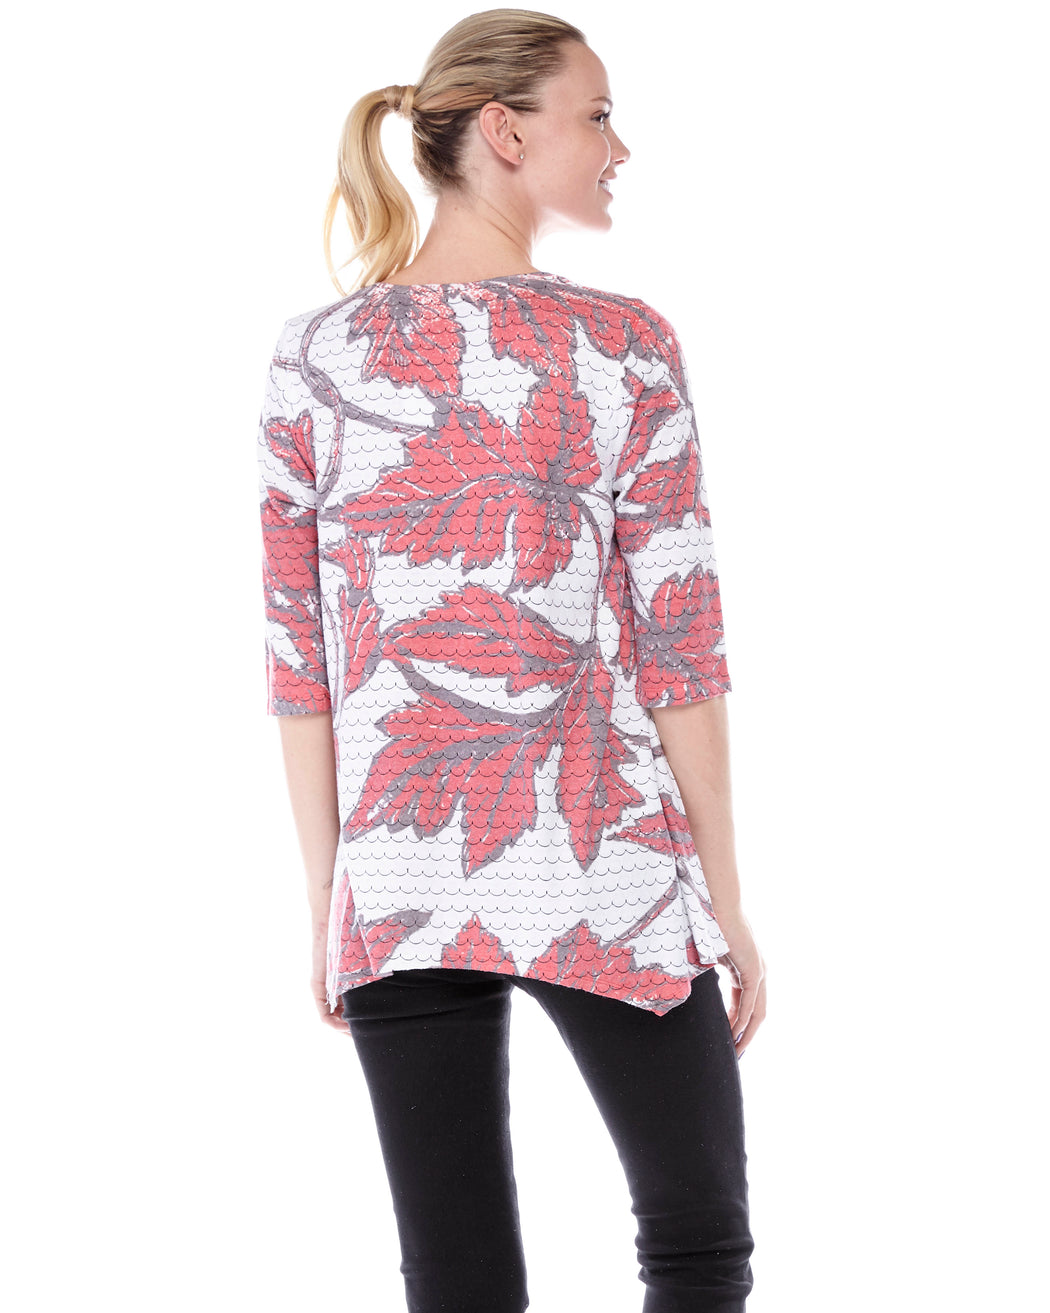 Azra Handkerchief Hem Top in Cherry Leaves Print - Atelier5